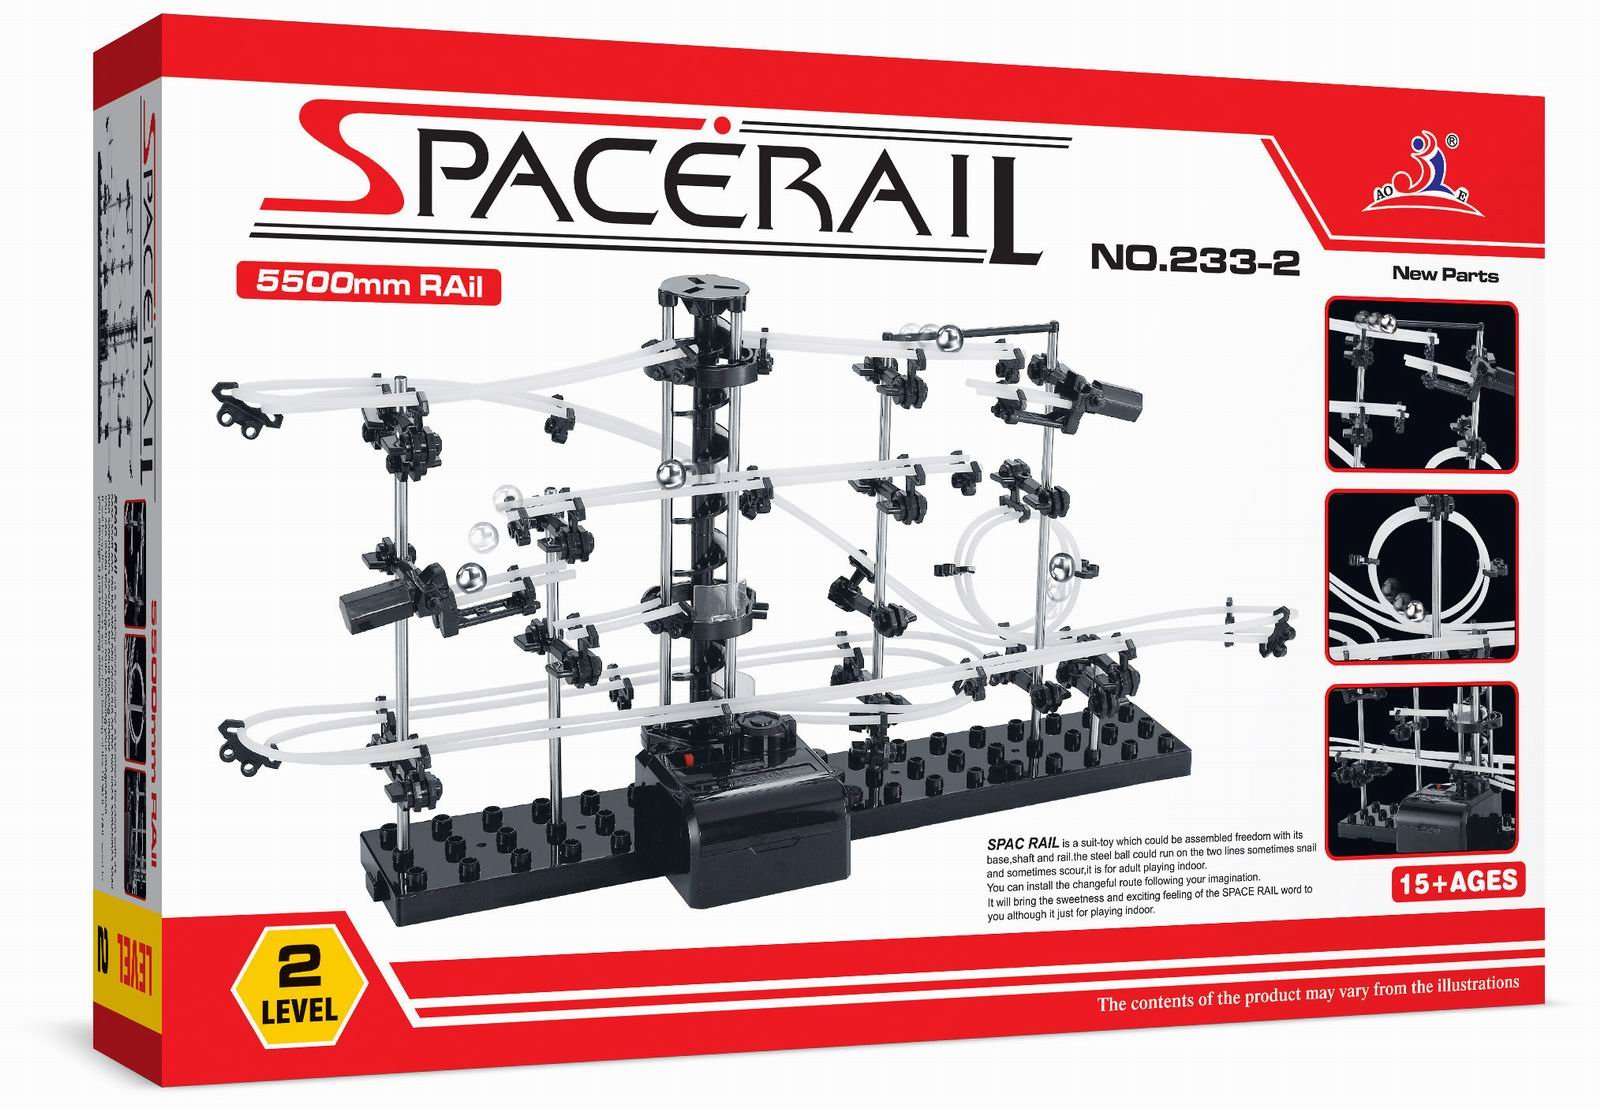 SpaceRail Glow in The Dark 5,500mm Rail, Roller Coaster Building Set, Marble Roller Coaster Kit with Steel Balls, Great Educational Toy for Boys and Girls, Level 2.2